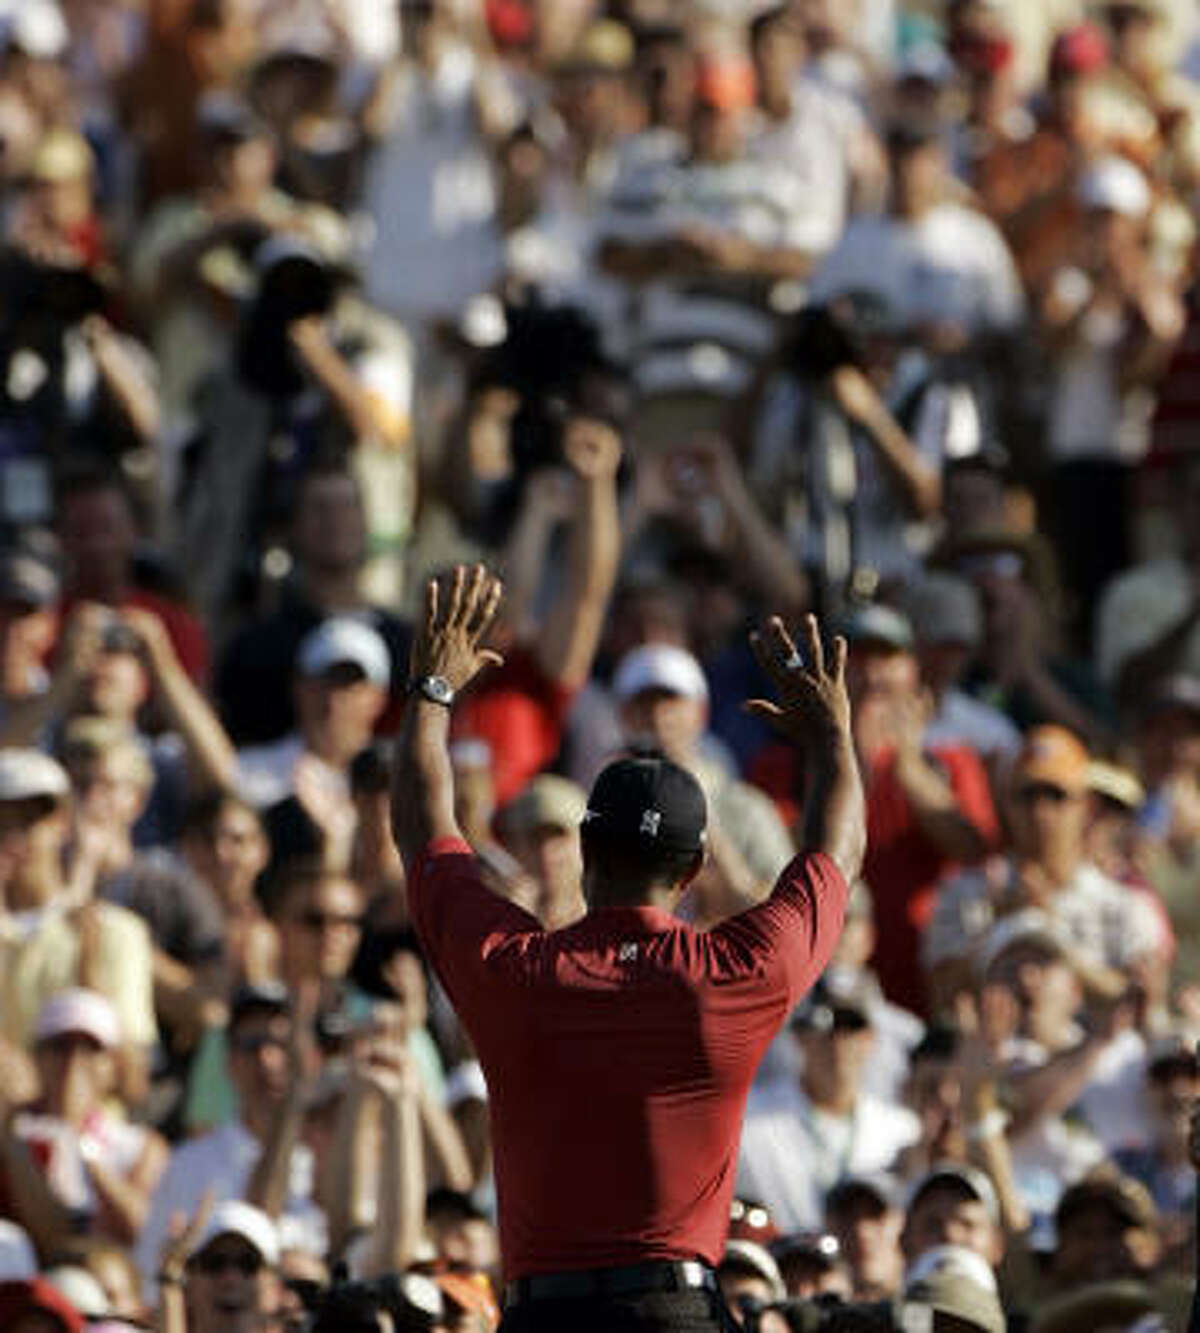 2007 PGA CHAMPIONSHIP: Tiger Woods pulled himself together after a three-putt bogey on the 14th and held off Woody Austin for the win at the Southern Hills Country Club in Tulsa, Okla.